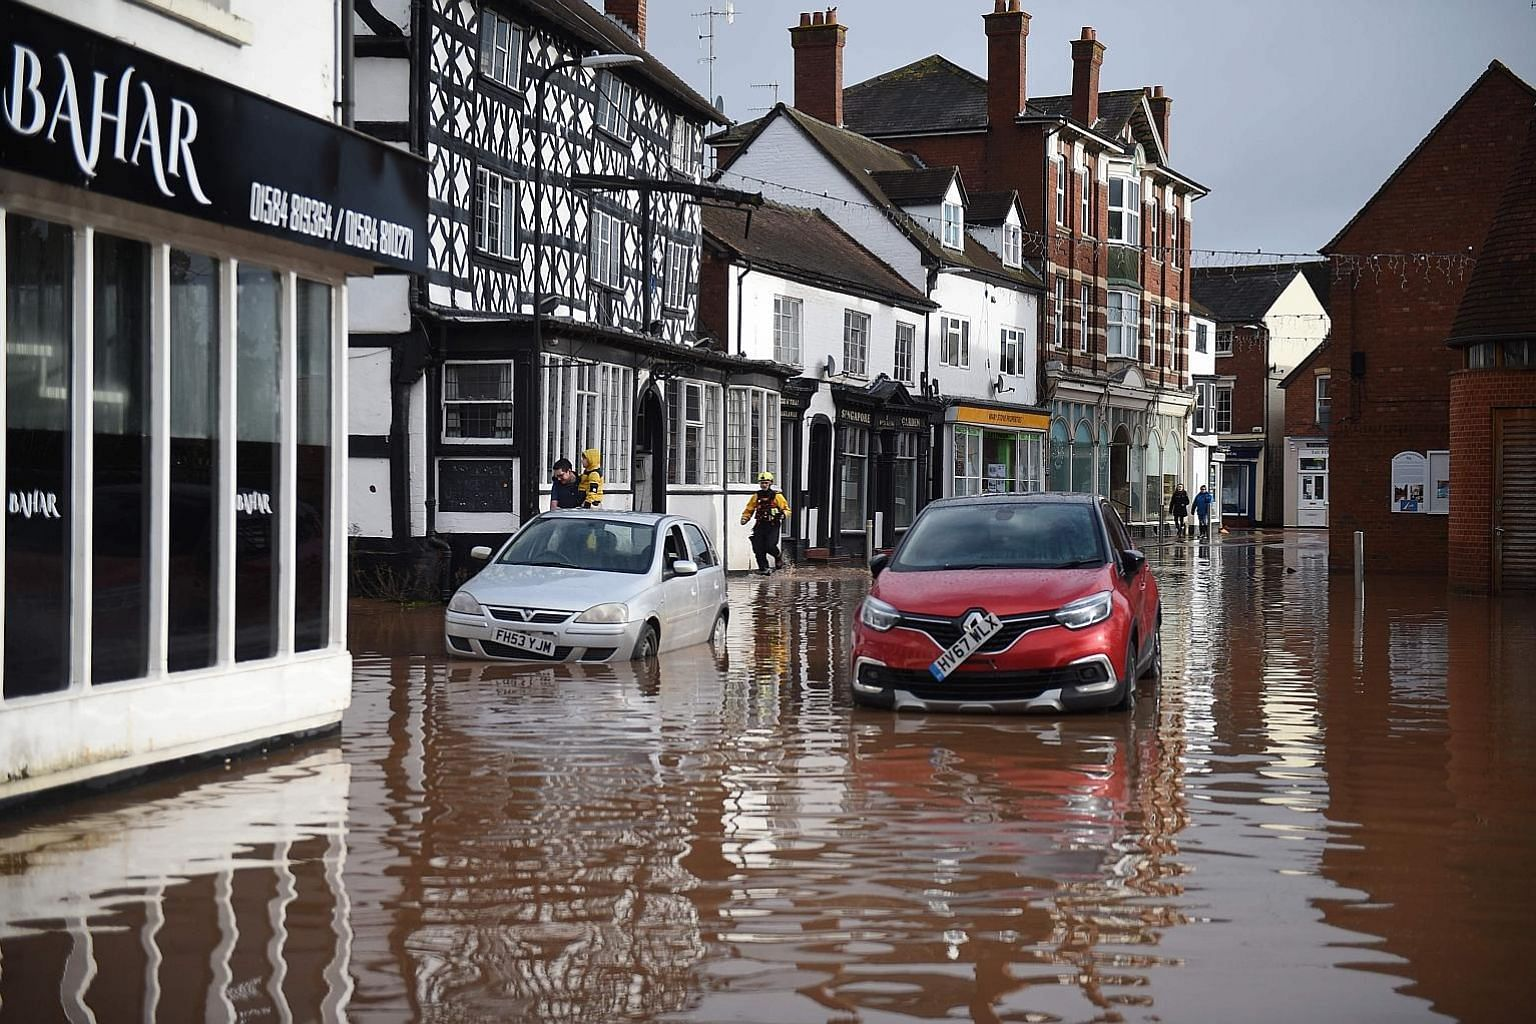 A flooded high street in Tenbury Wells in Worcestershire, western England, yesterday. More than a month's worth of rain fell in 48 hours in some parts of Britain. PHOTO: AGENCE FRANCE-PRESSE